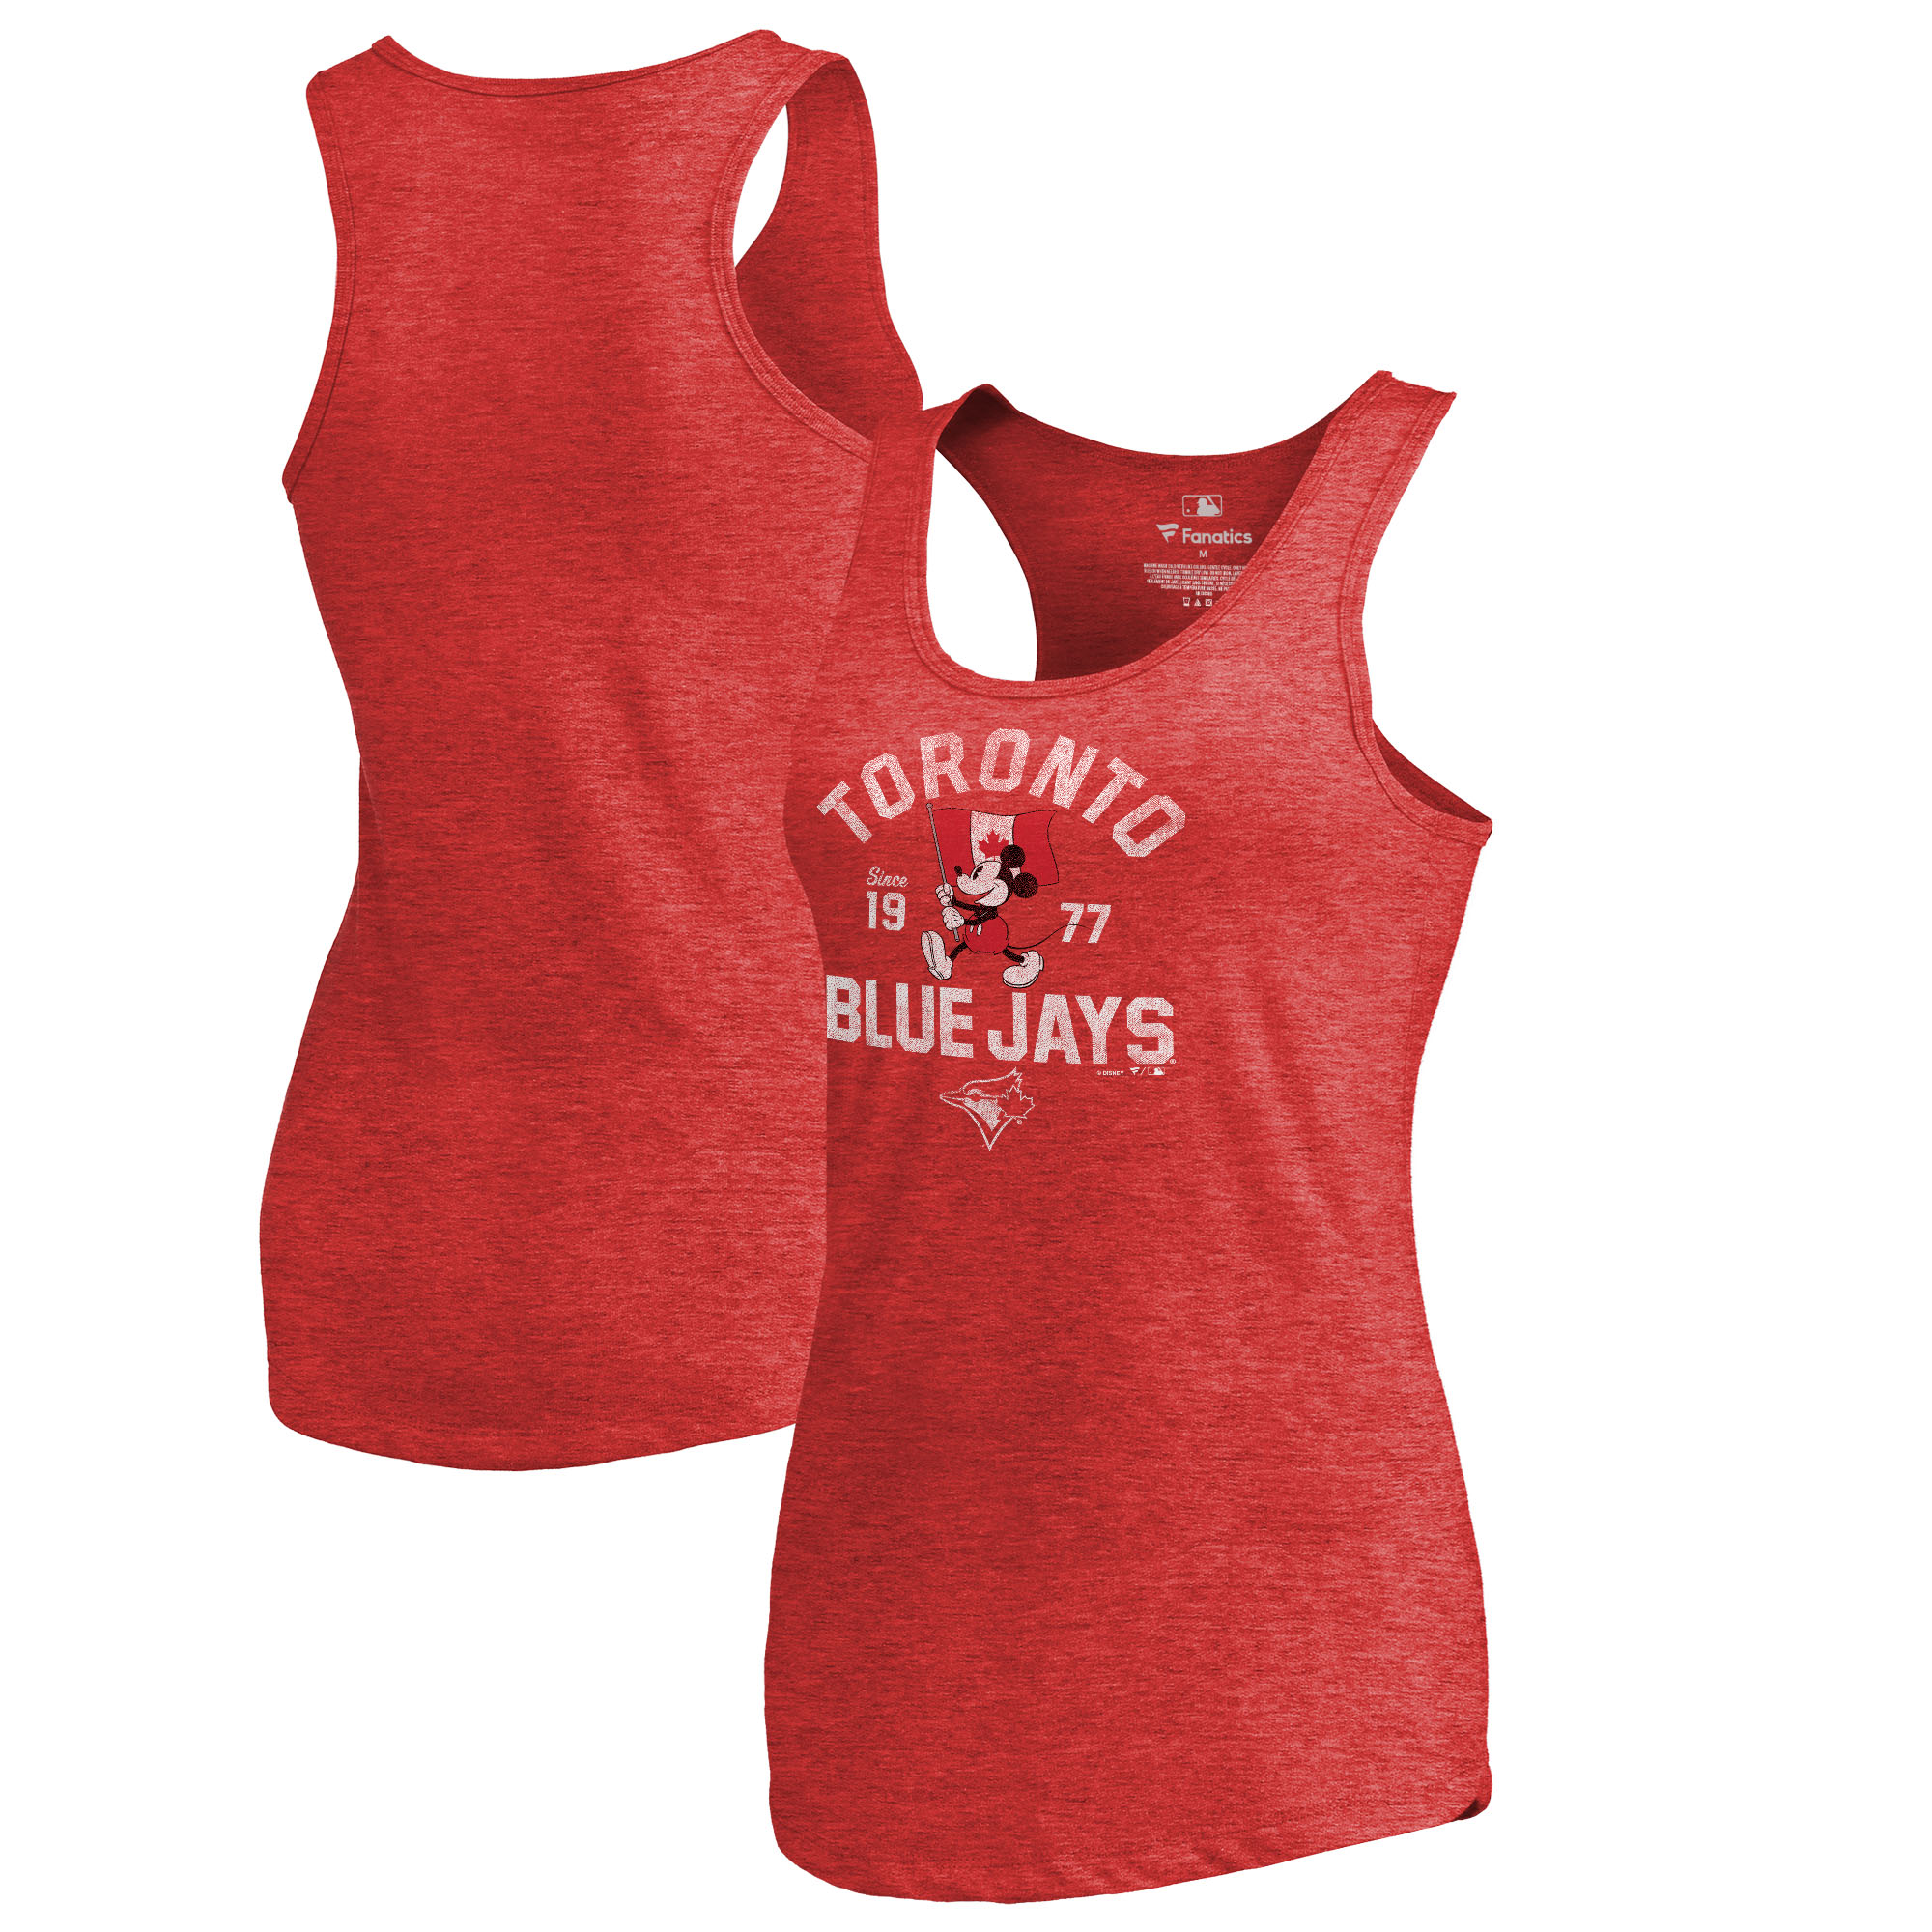 Toronto Blue Jays Fanatics Branded Women's Disney National Icon Tri-Blend Tank Top - Red